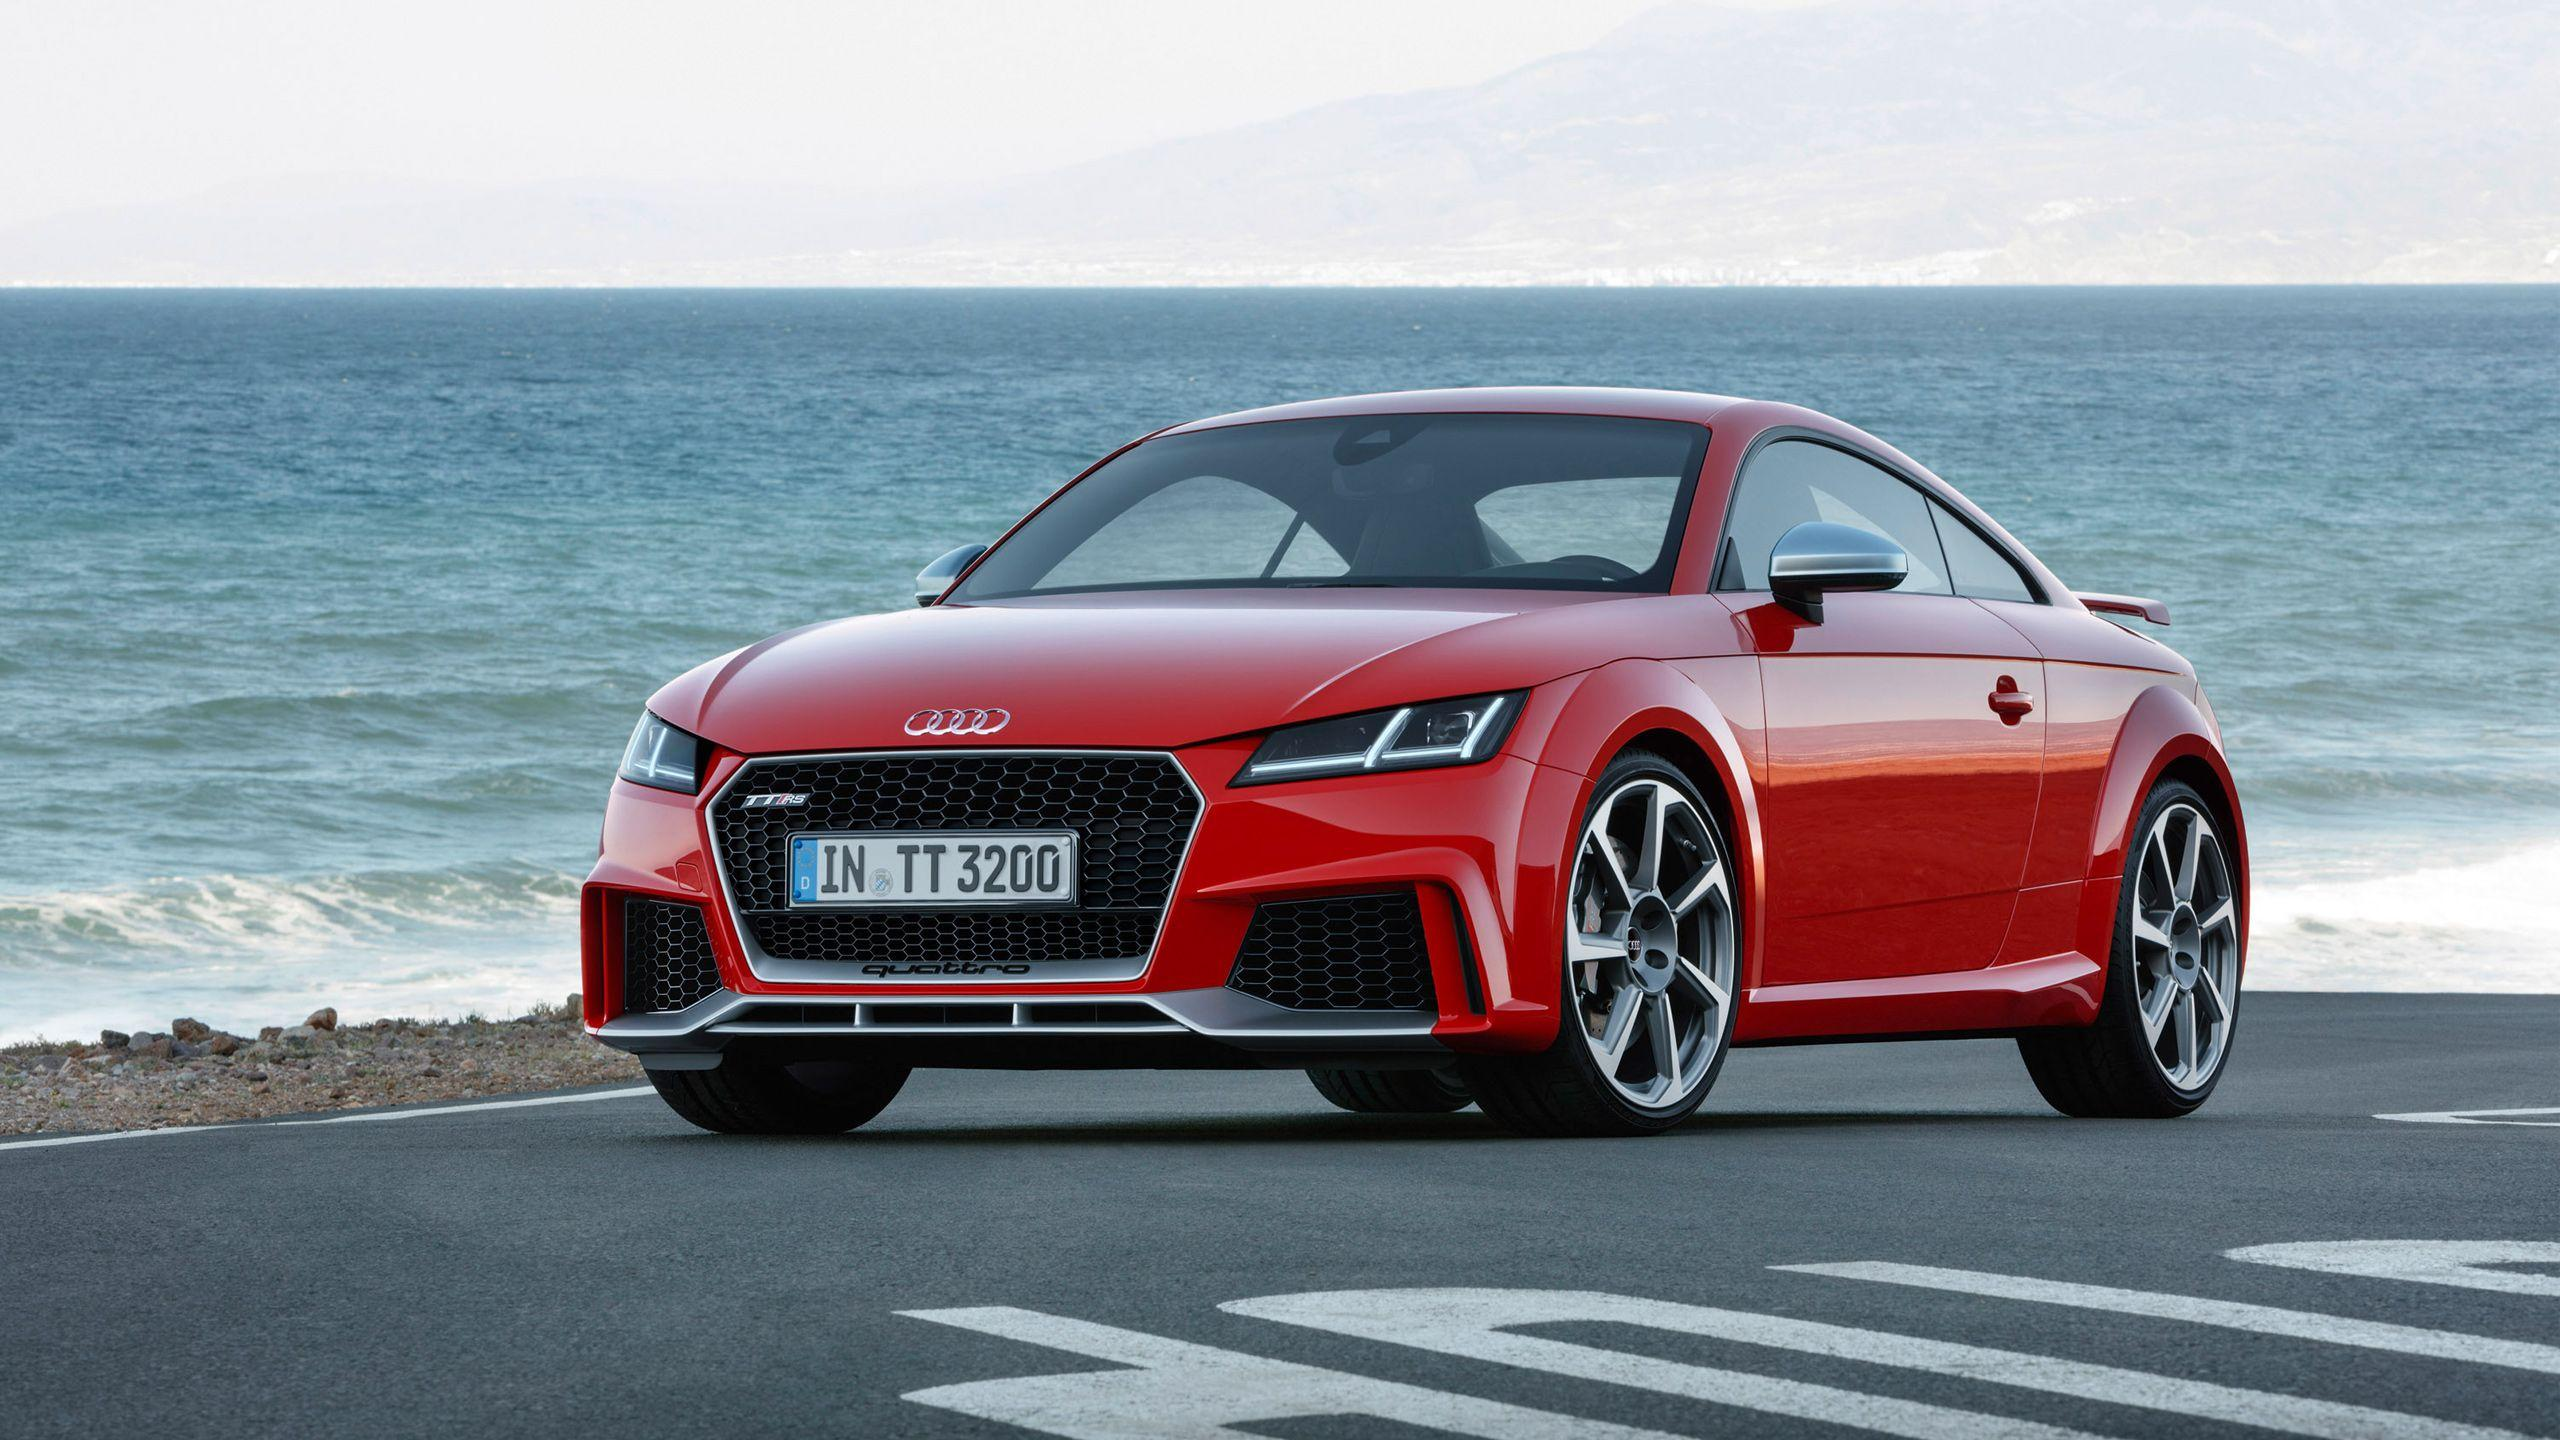 2017 Audi TT RS Wallpapers